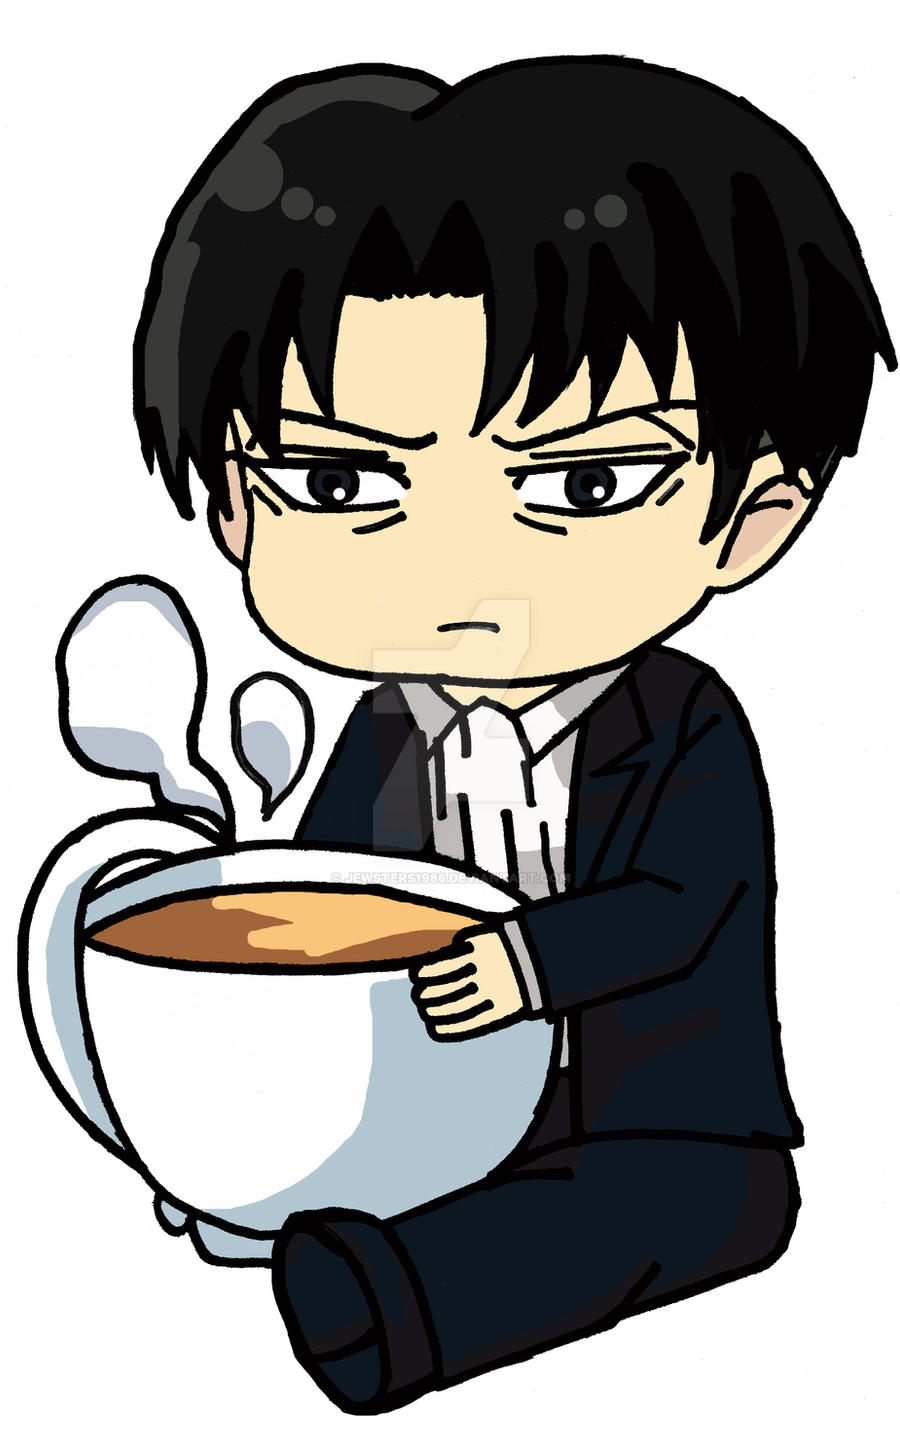 Chibi Levi Ackerman By Jewsters1986 On Deviantart